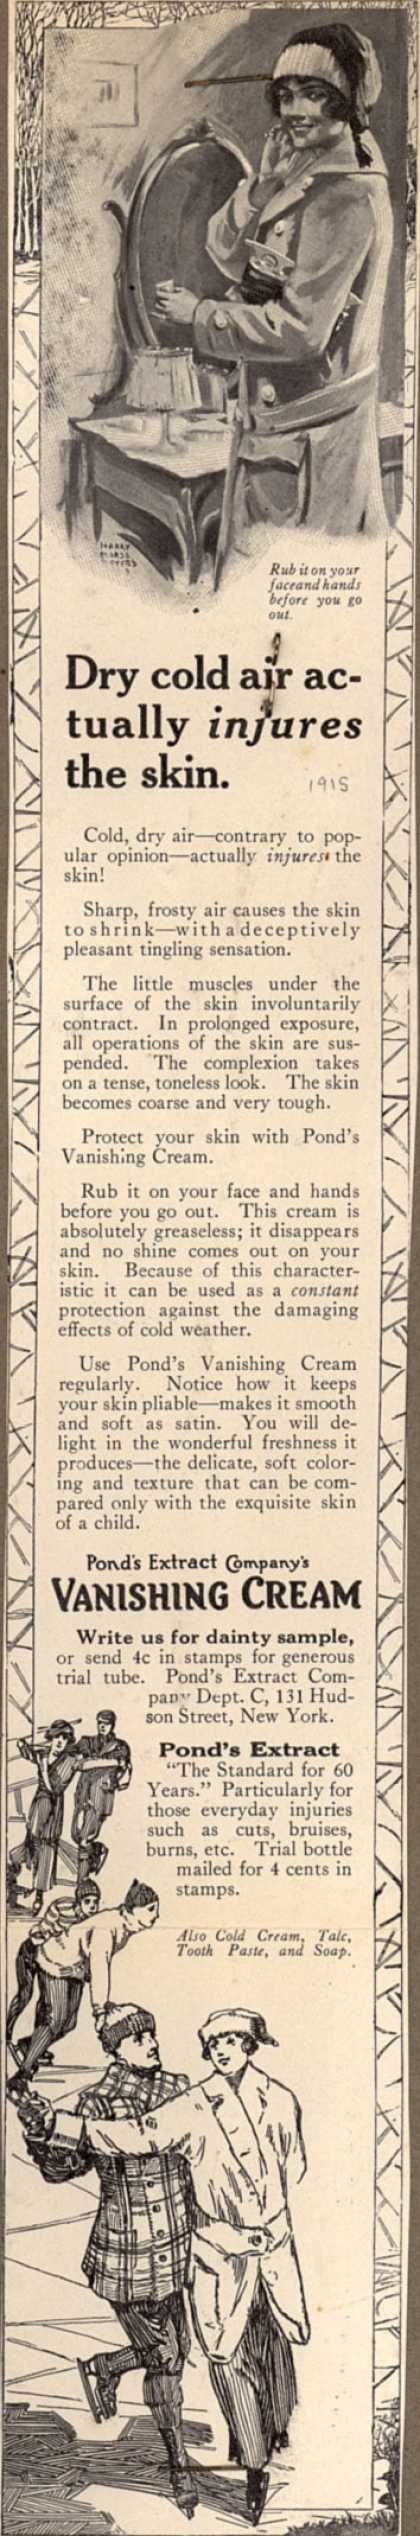 Pond's Extract Co.'s Pond's Vanishing Cream – Dry cold air actually injures the skin. (1915)